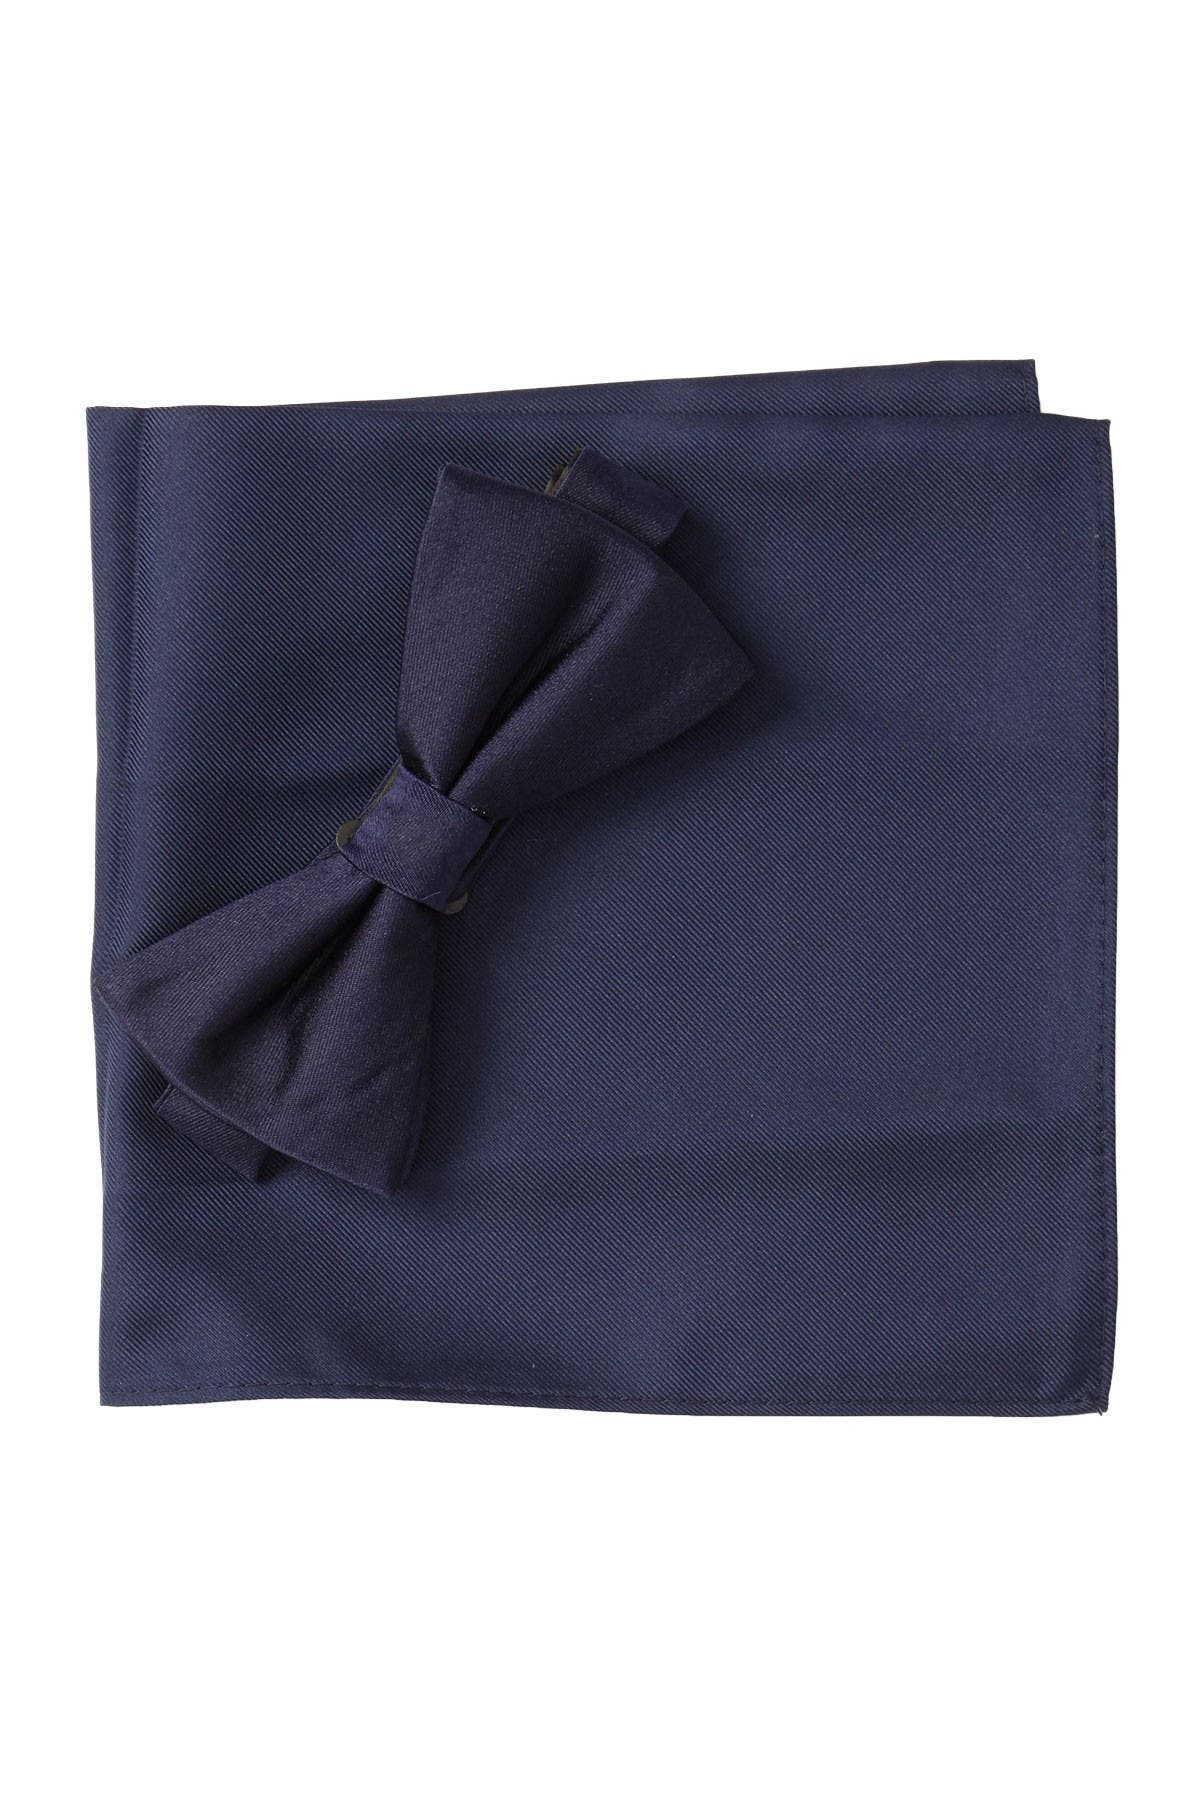 Image of Nordstrom Rack Solid Satin Combo Bow-Tie & Pocket Square Set